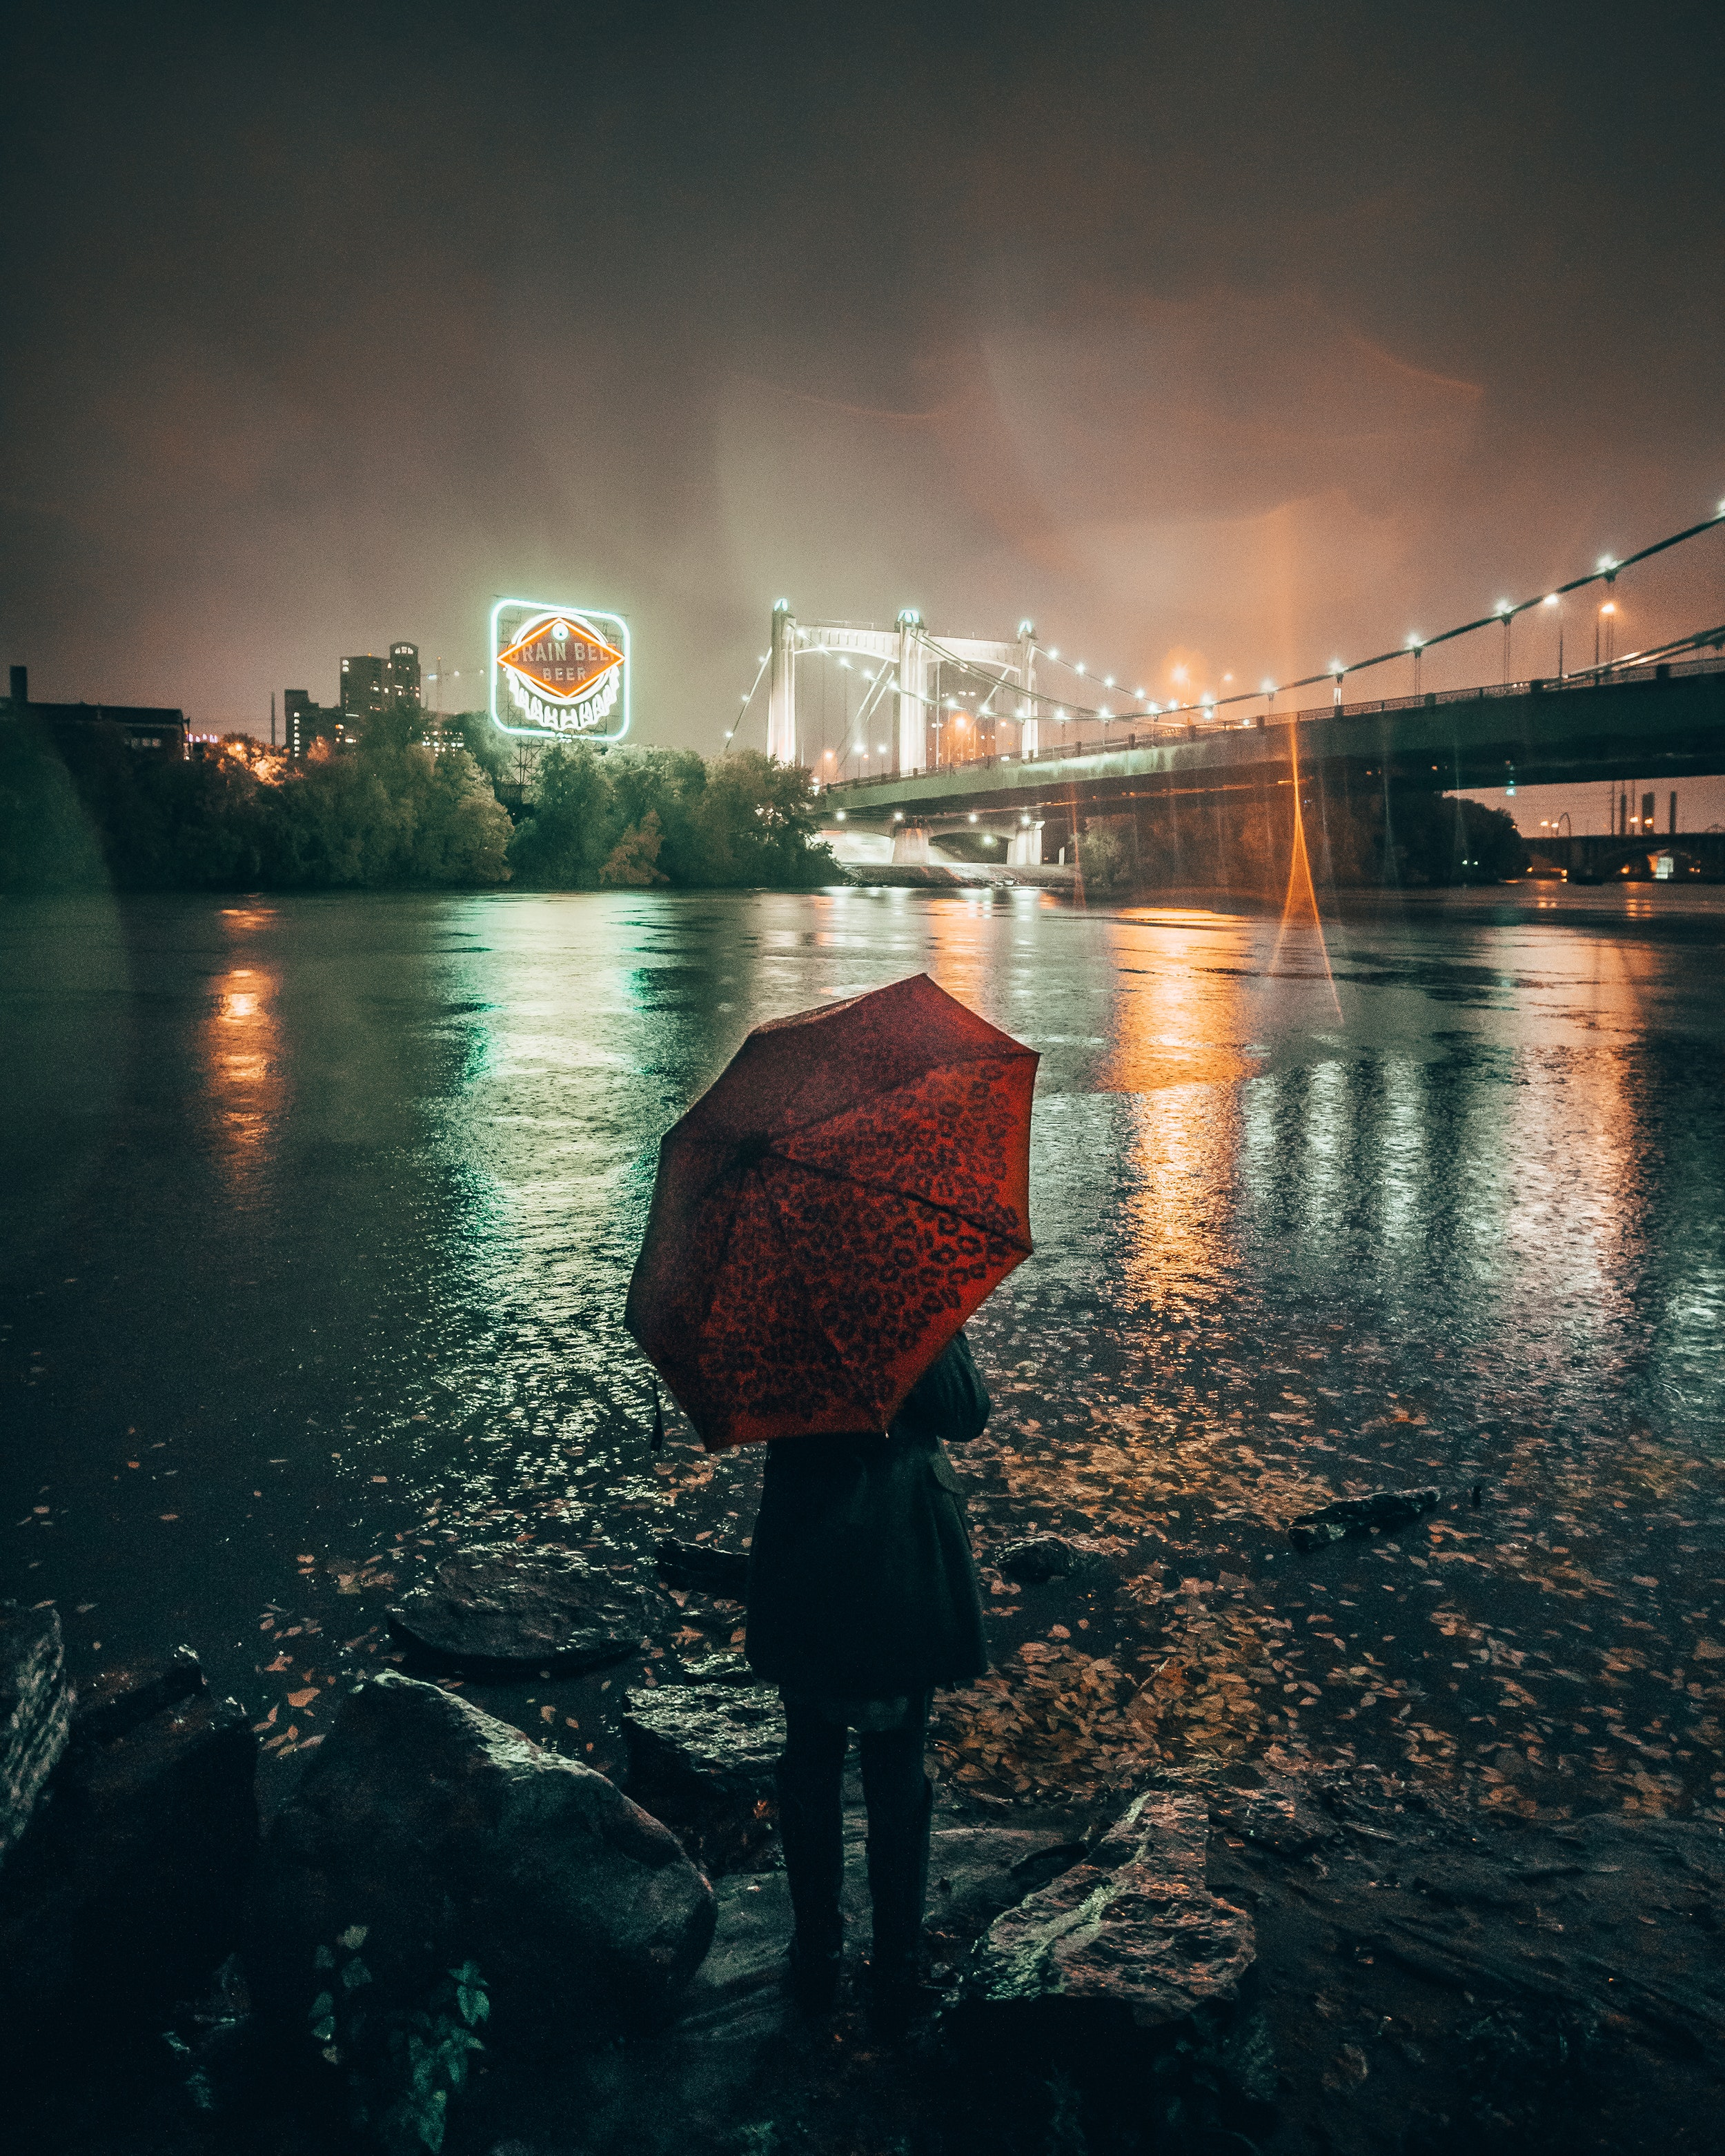 A person standing alone in front of a city bridge in the dark and rain. Photo courtesy of Josh Hild on Pexels.